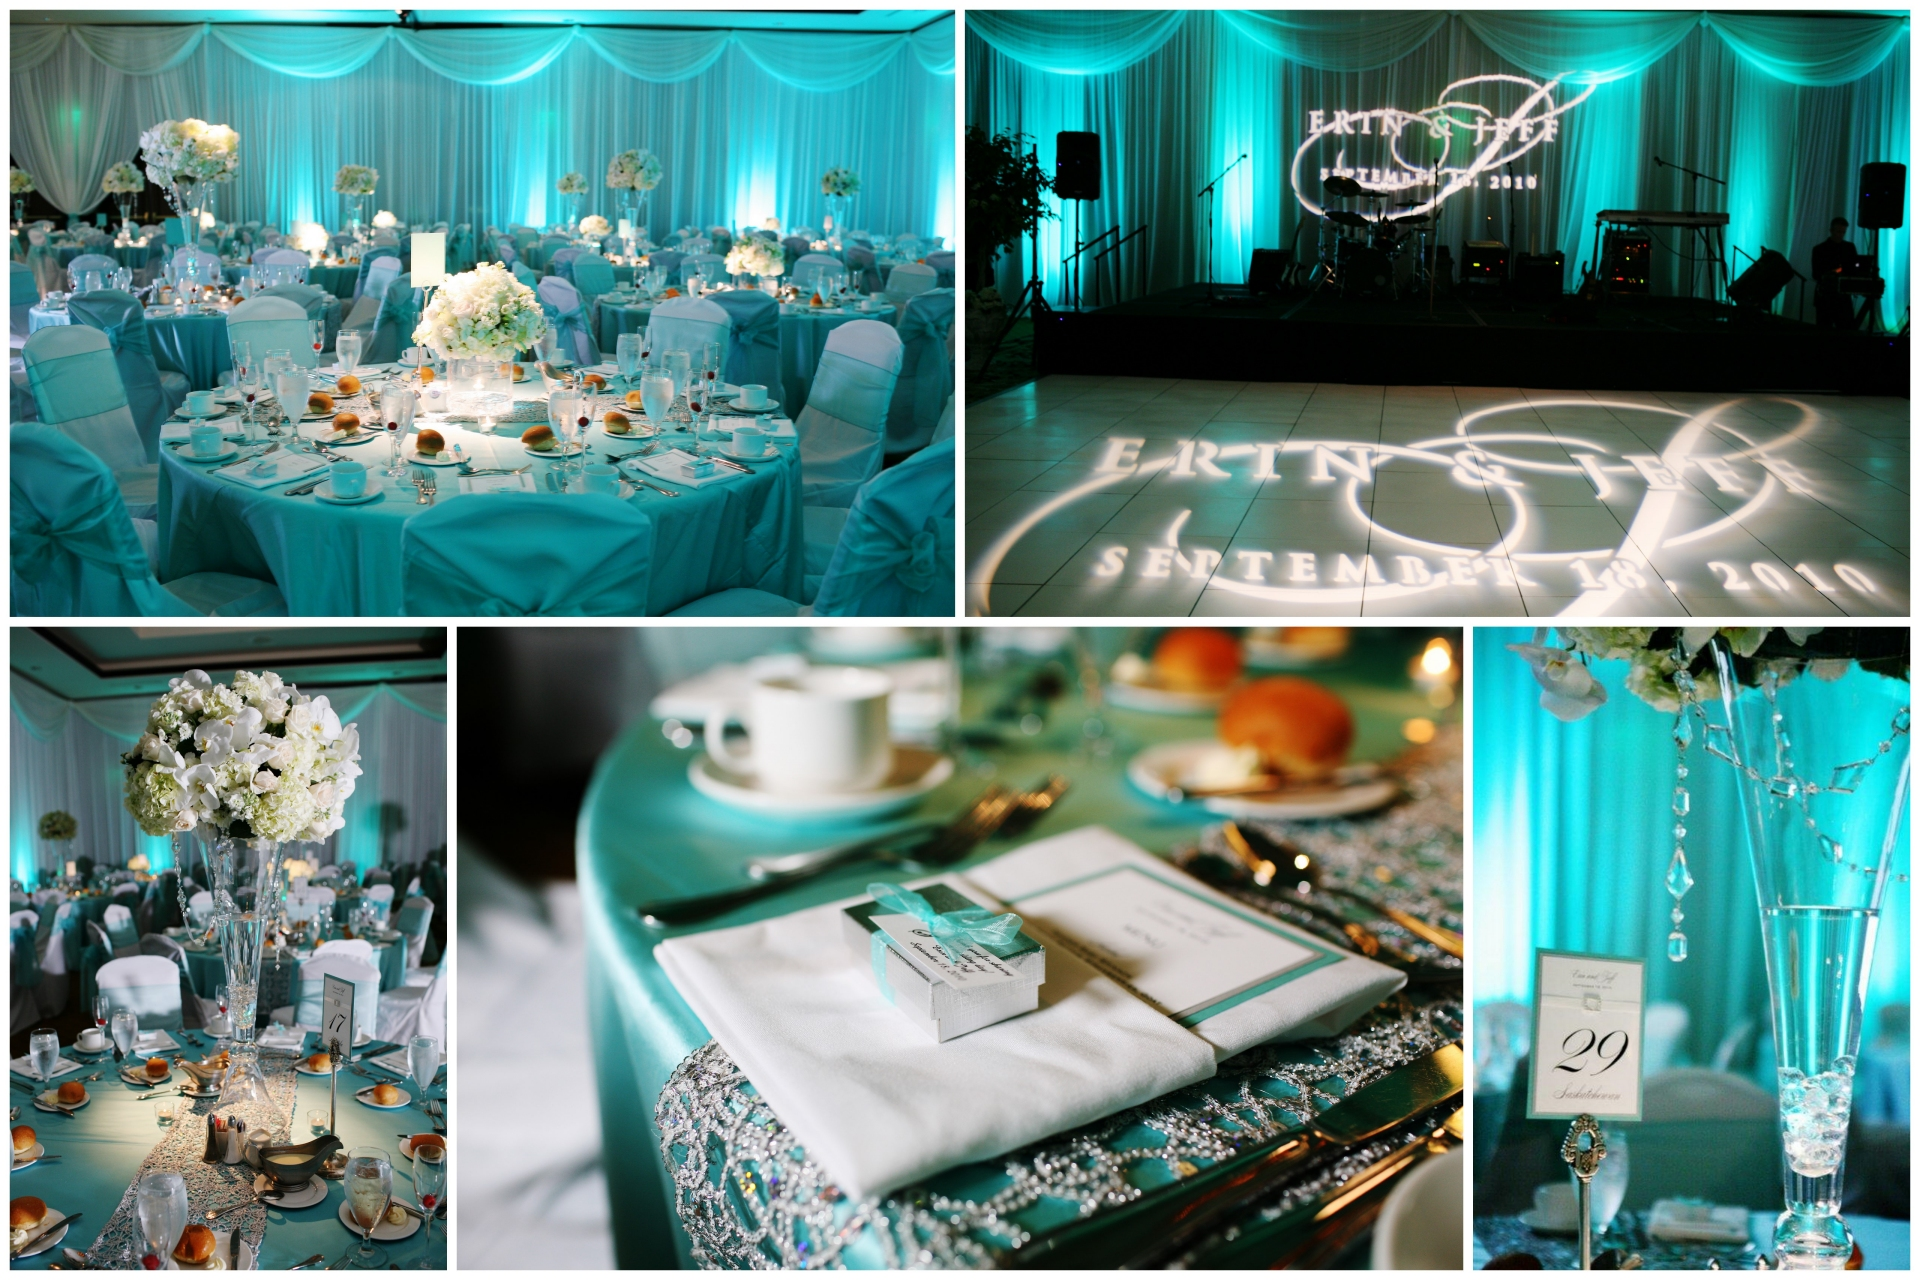 The Tiffany Blue Theme Wedding Ideas